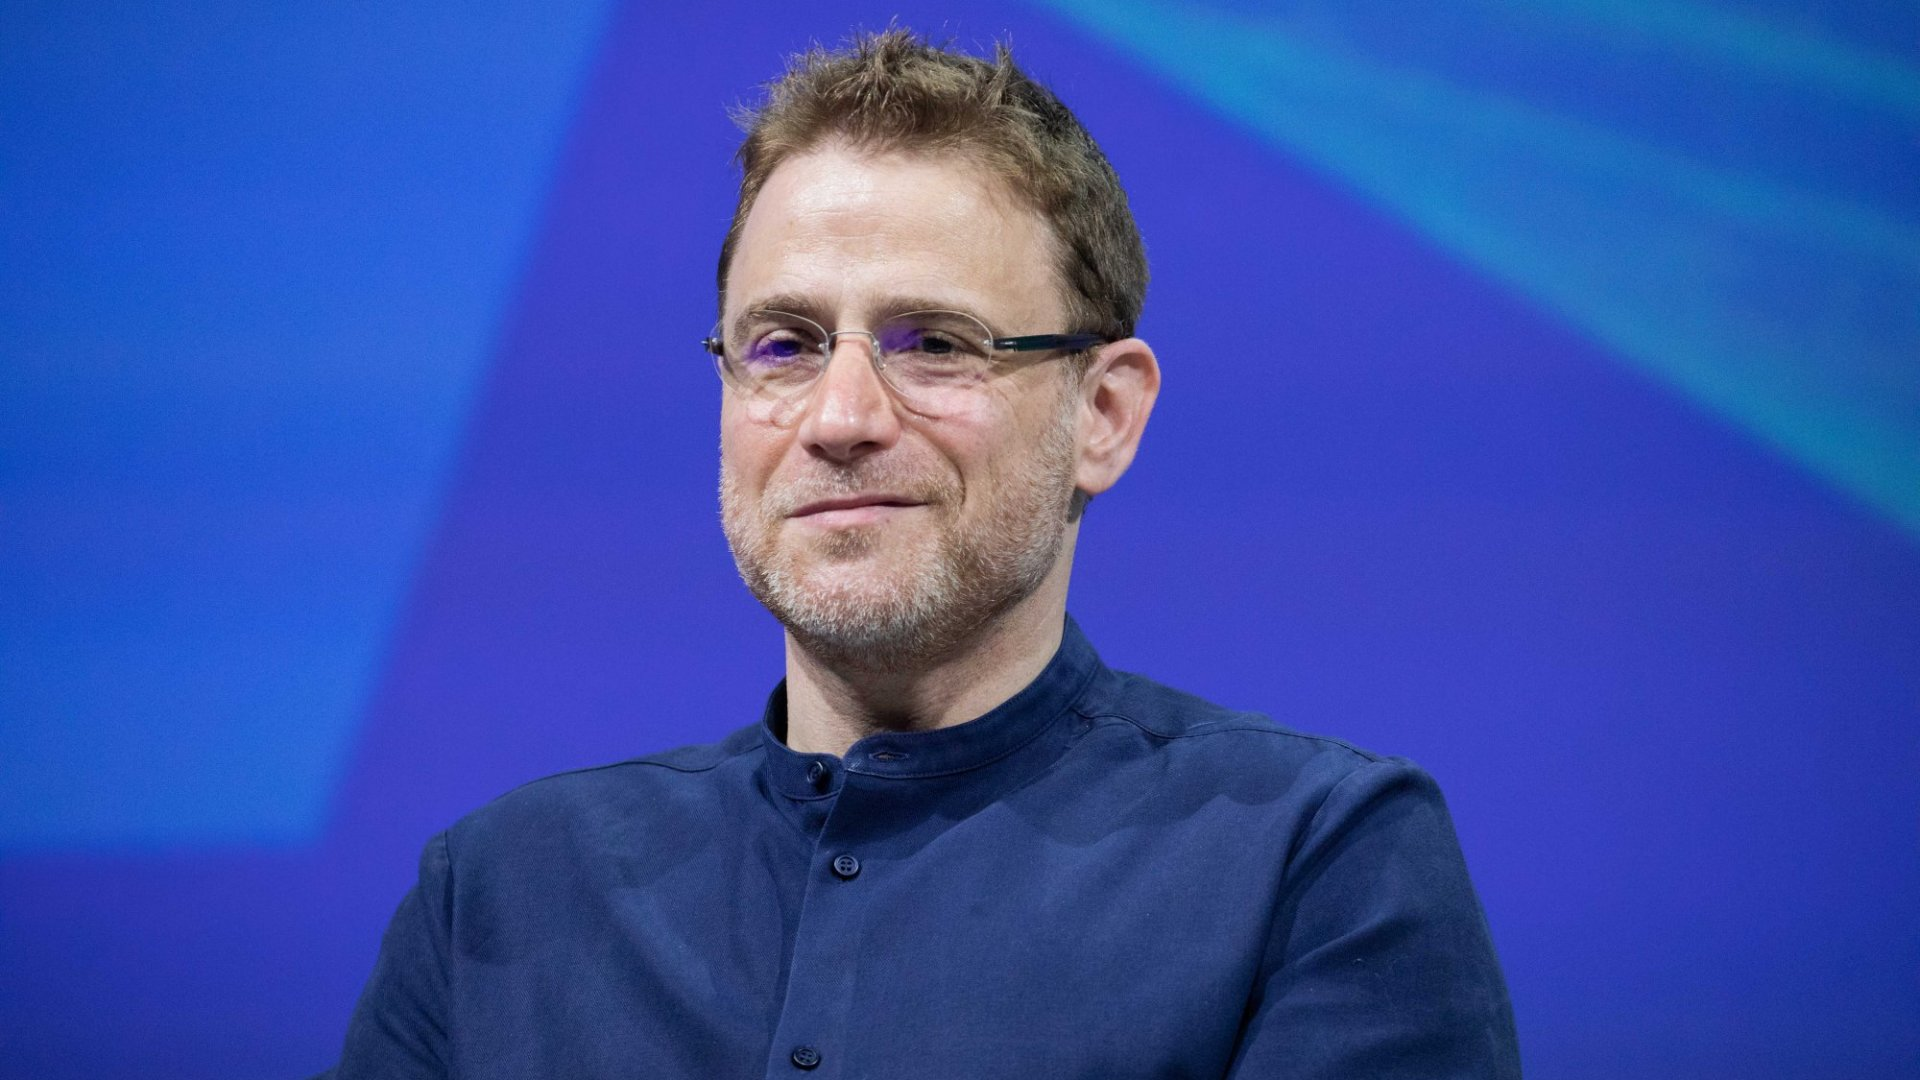 Slack Has Confidentially Filed an IPO